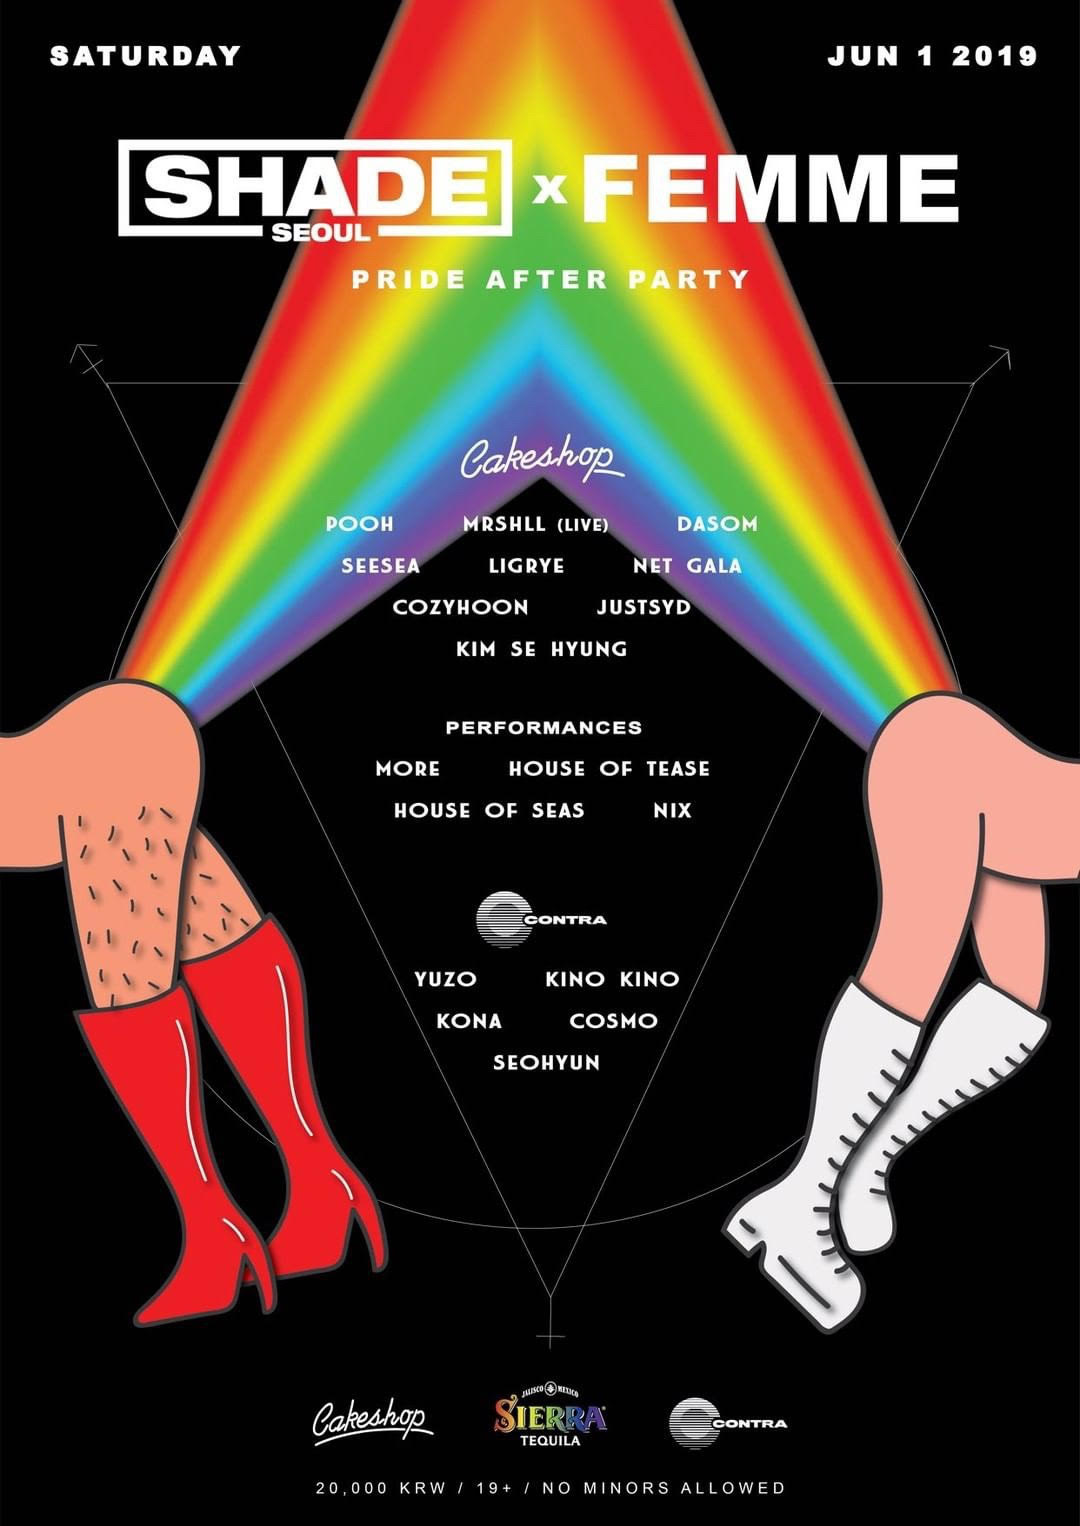 SHADE x FEMME - The Official Pride After Party for Seoul!